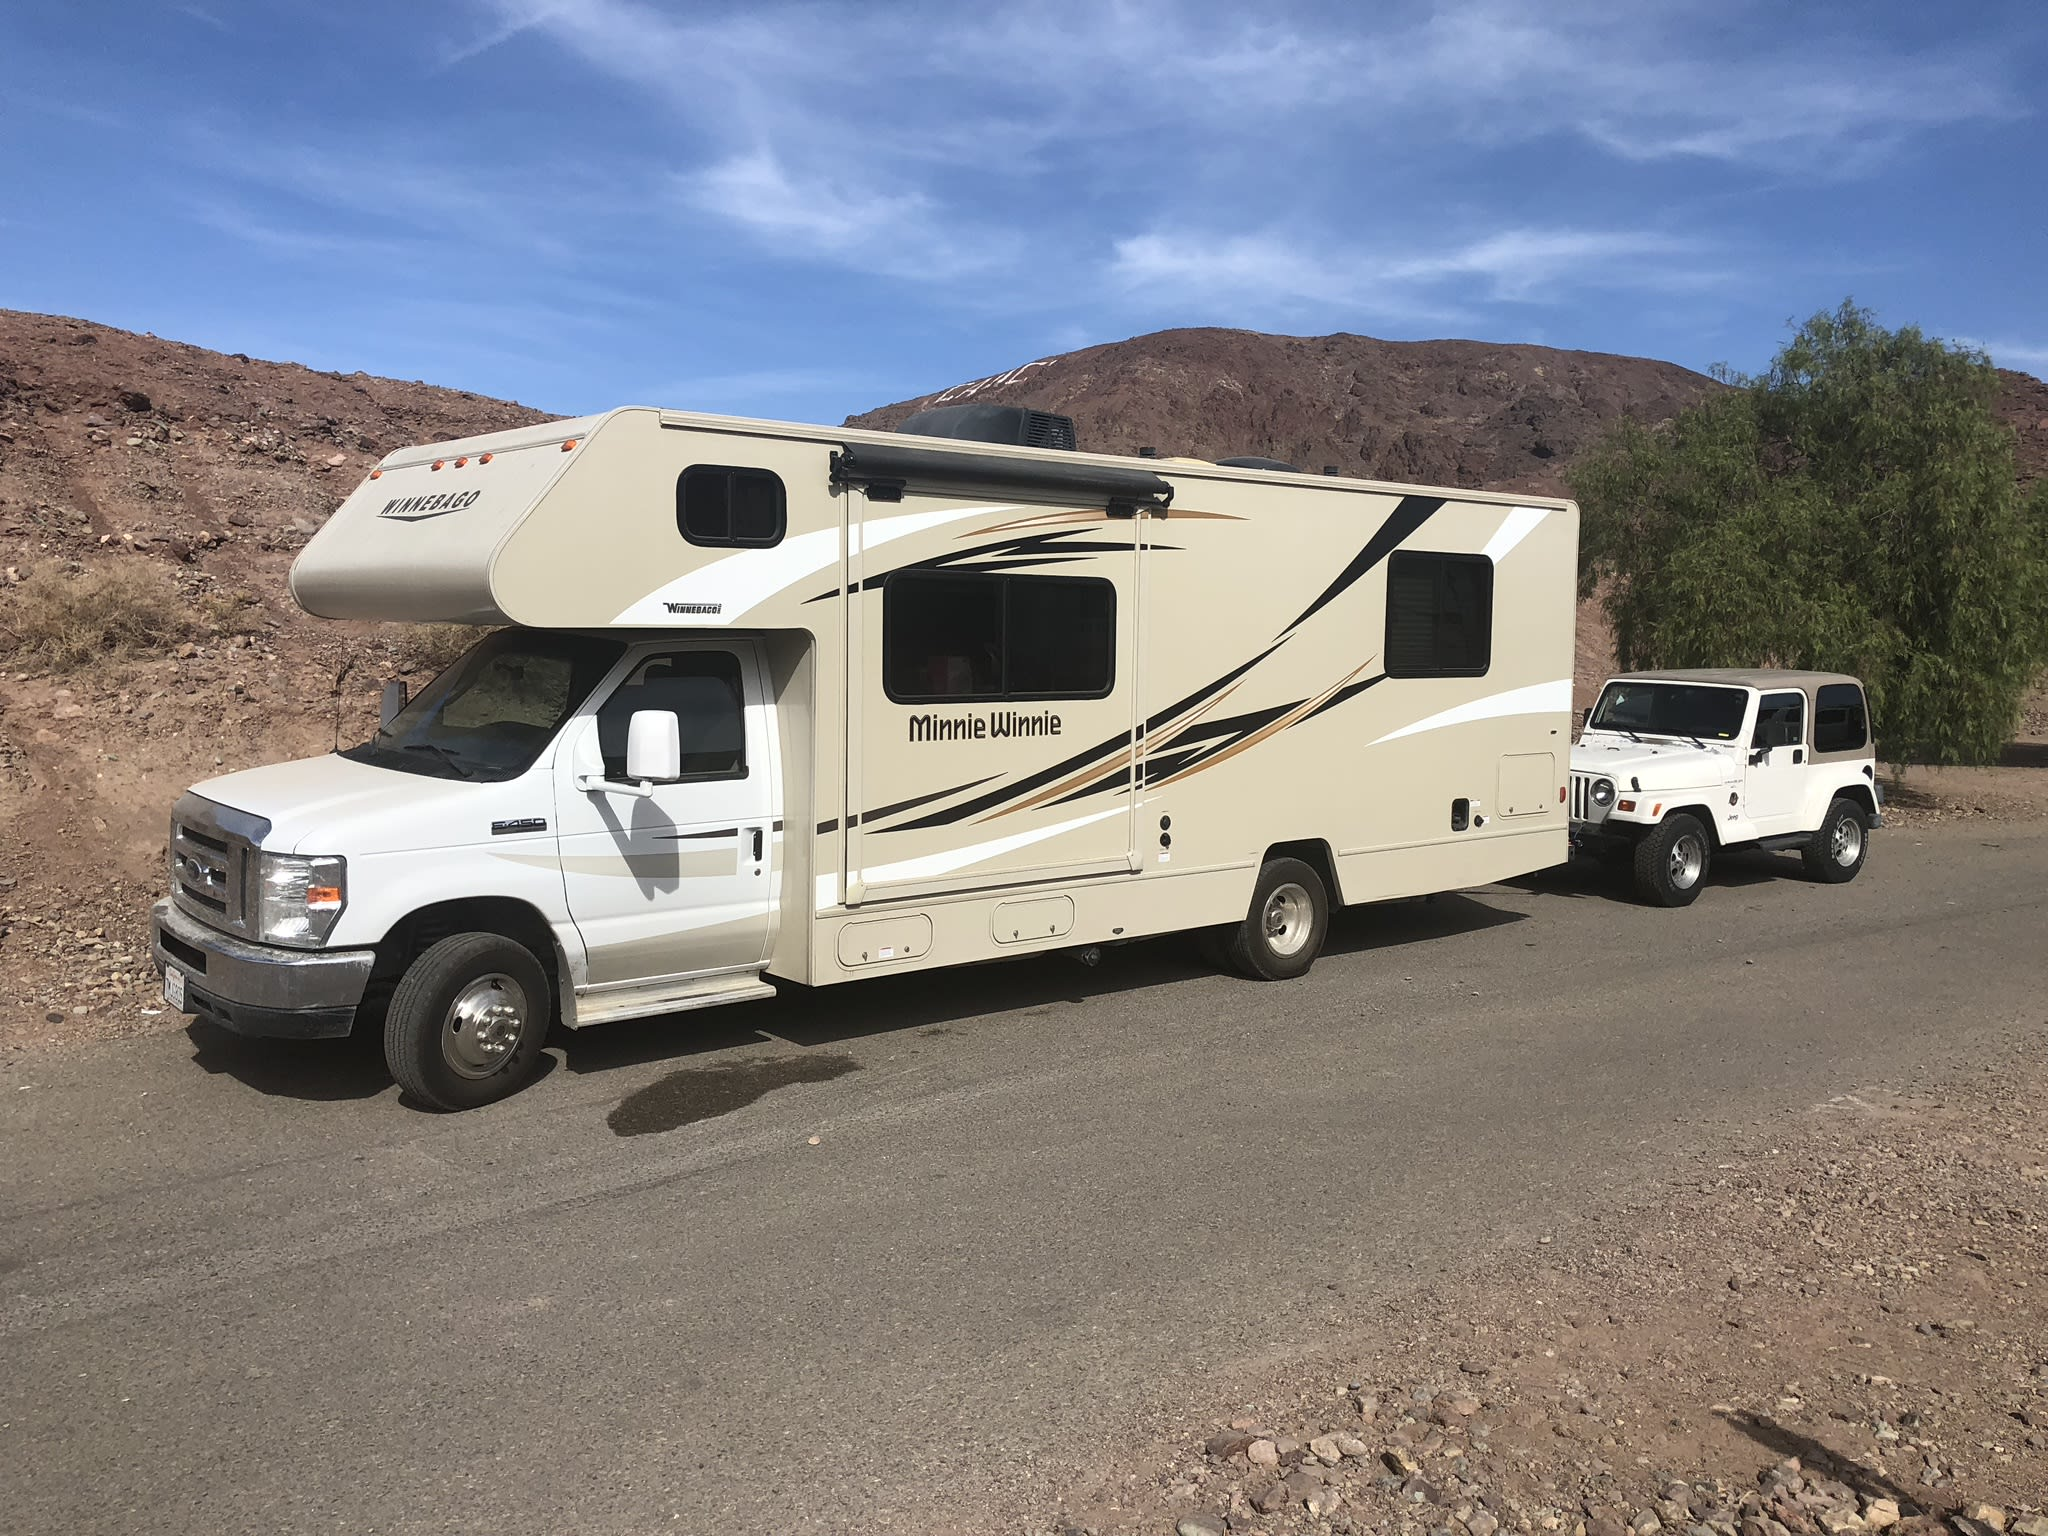 Makes even the desert fun for the whole family. Easy to drive and gives you options with kids. . Winnebago Minnie Winnie 2016